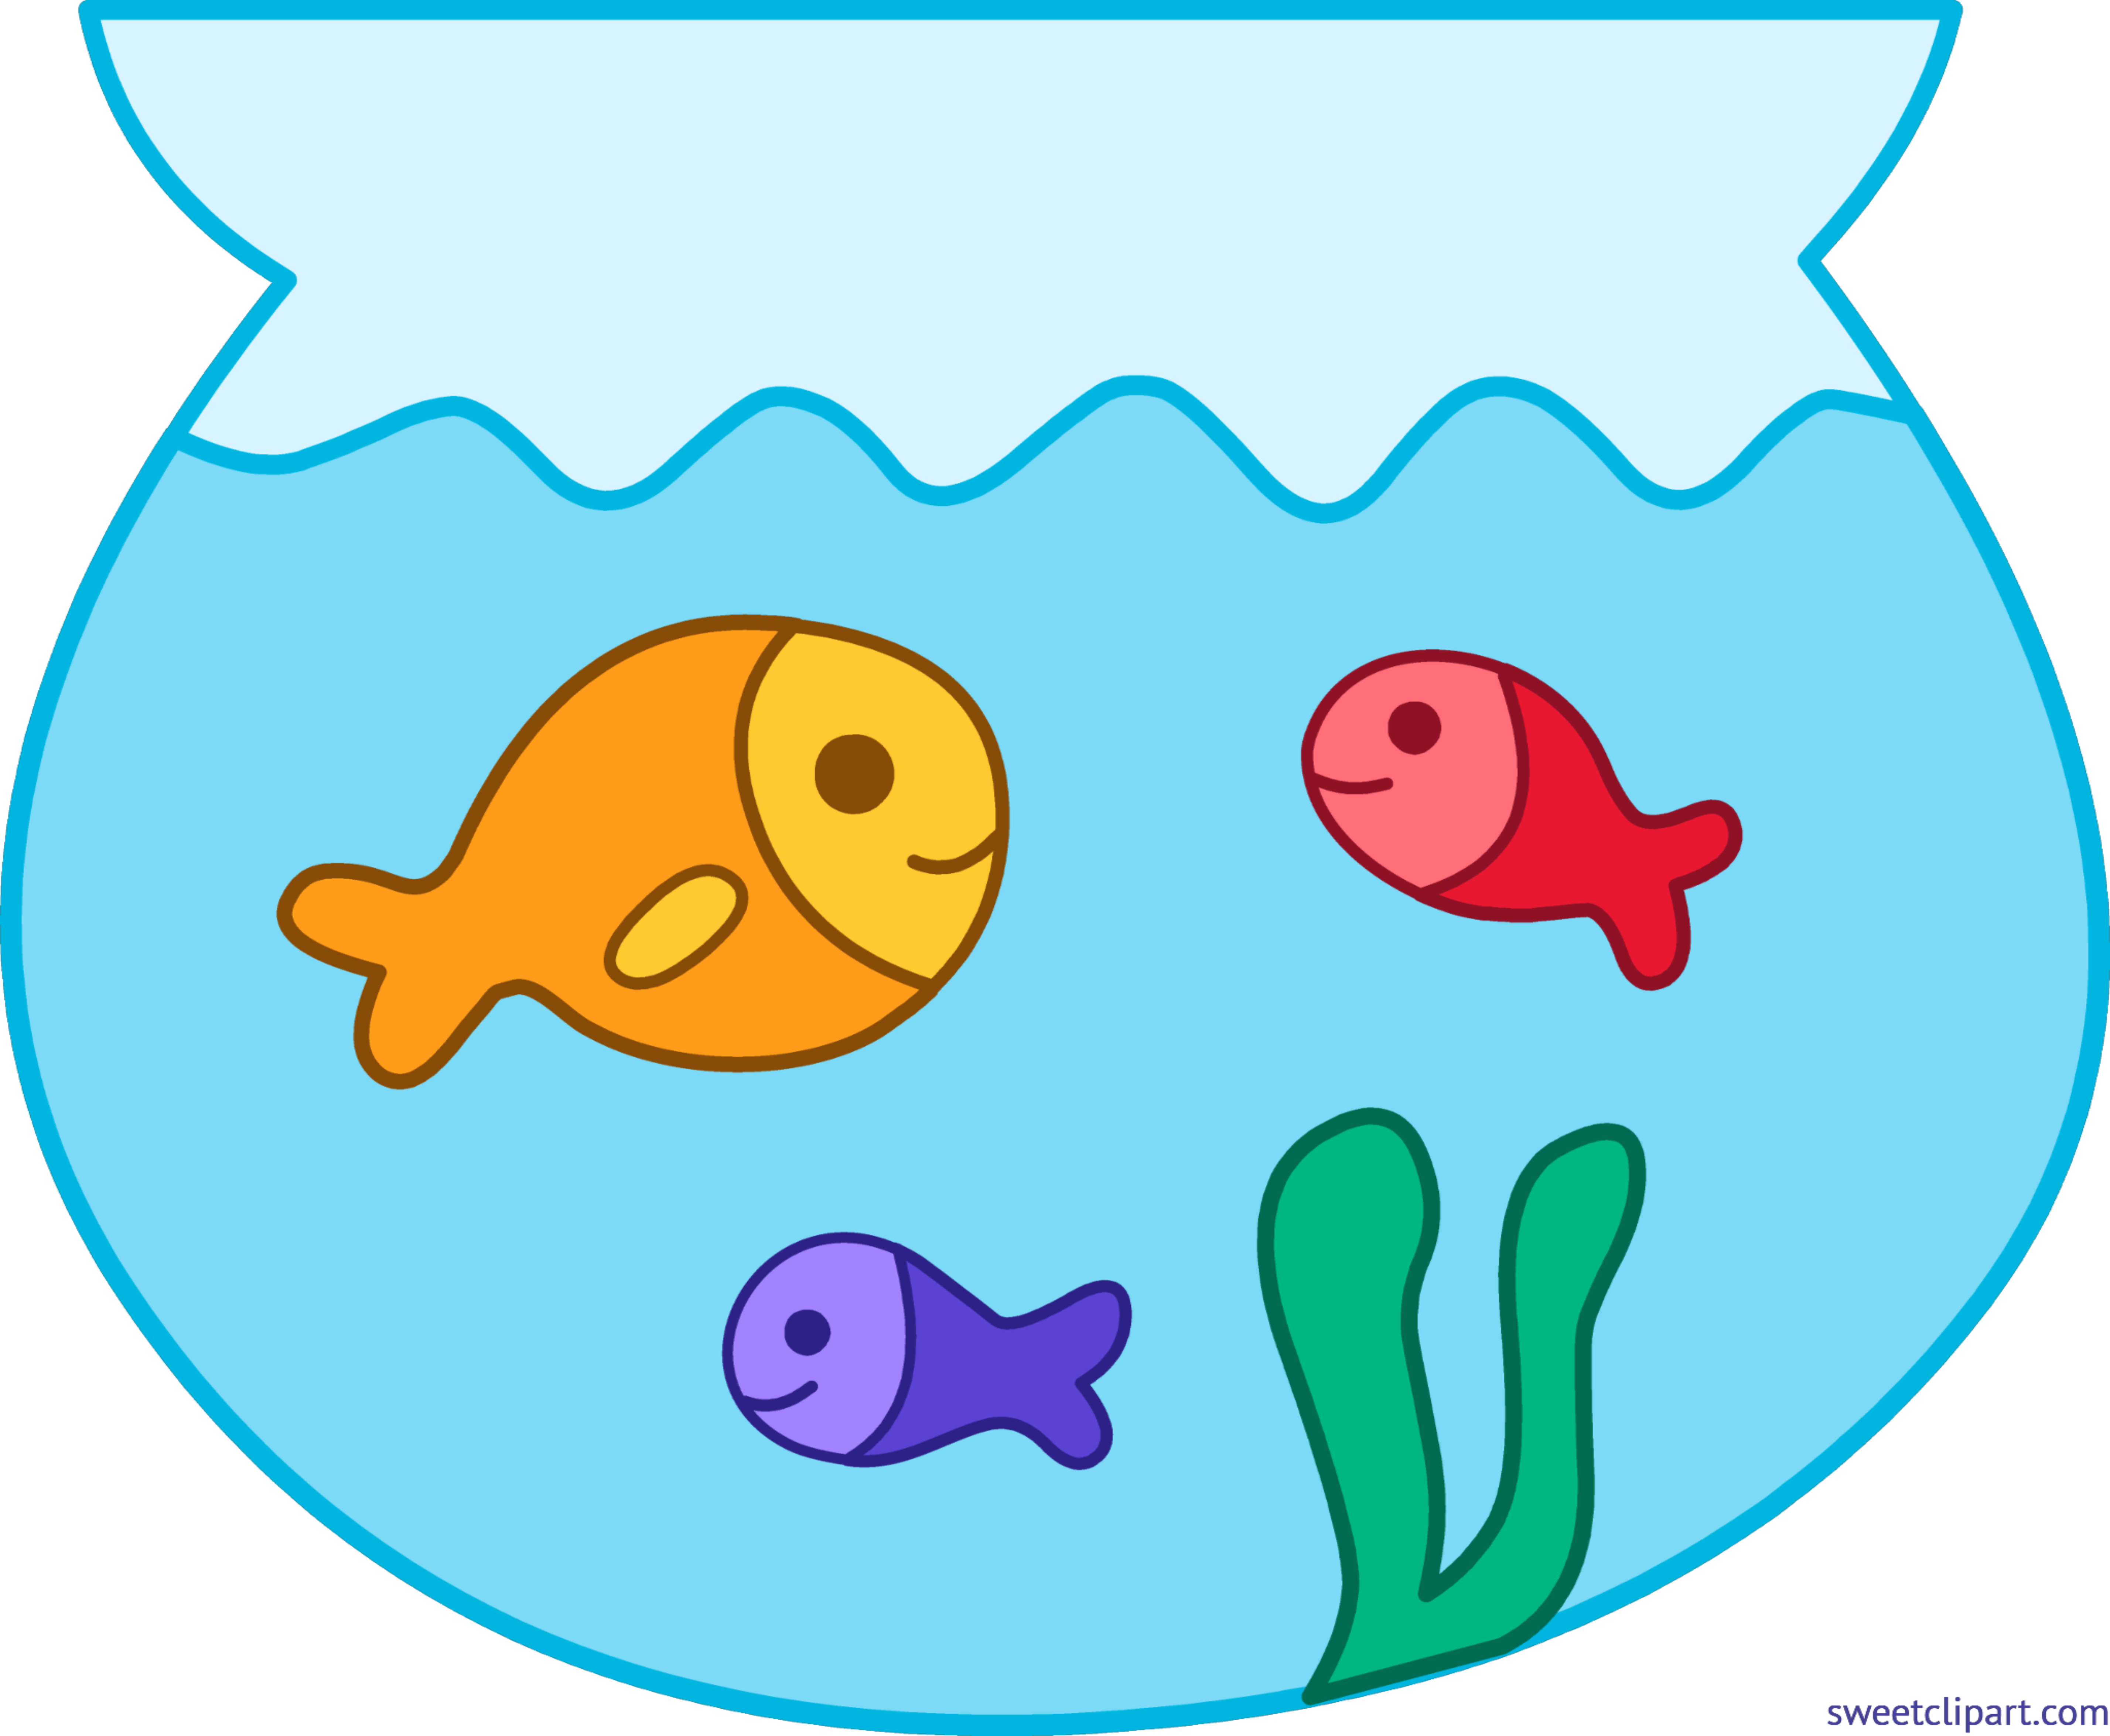 Dog water bowl clipart graphic 28+ Collection of Cute Fish Bowl Clipart | High quality, free ... graphic